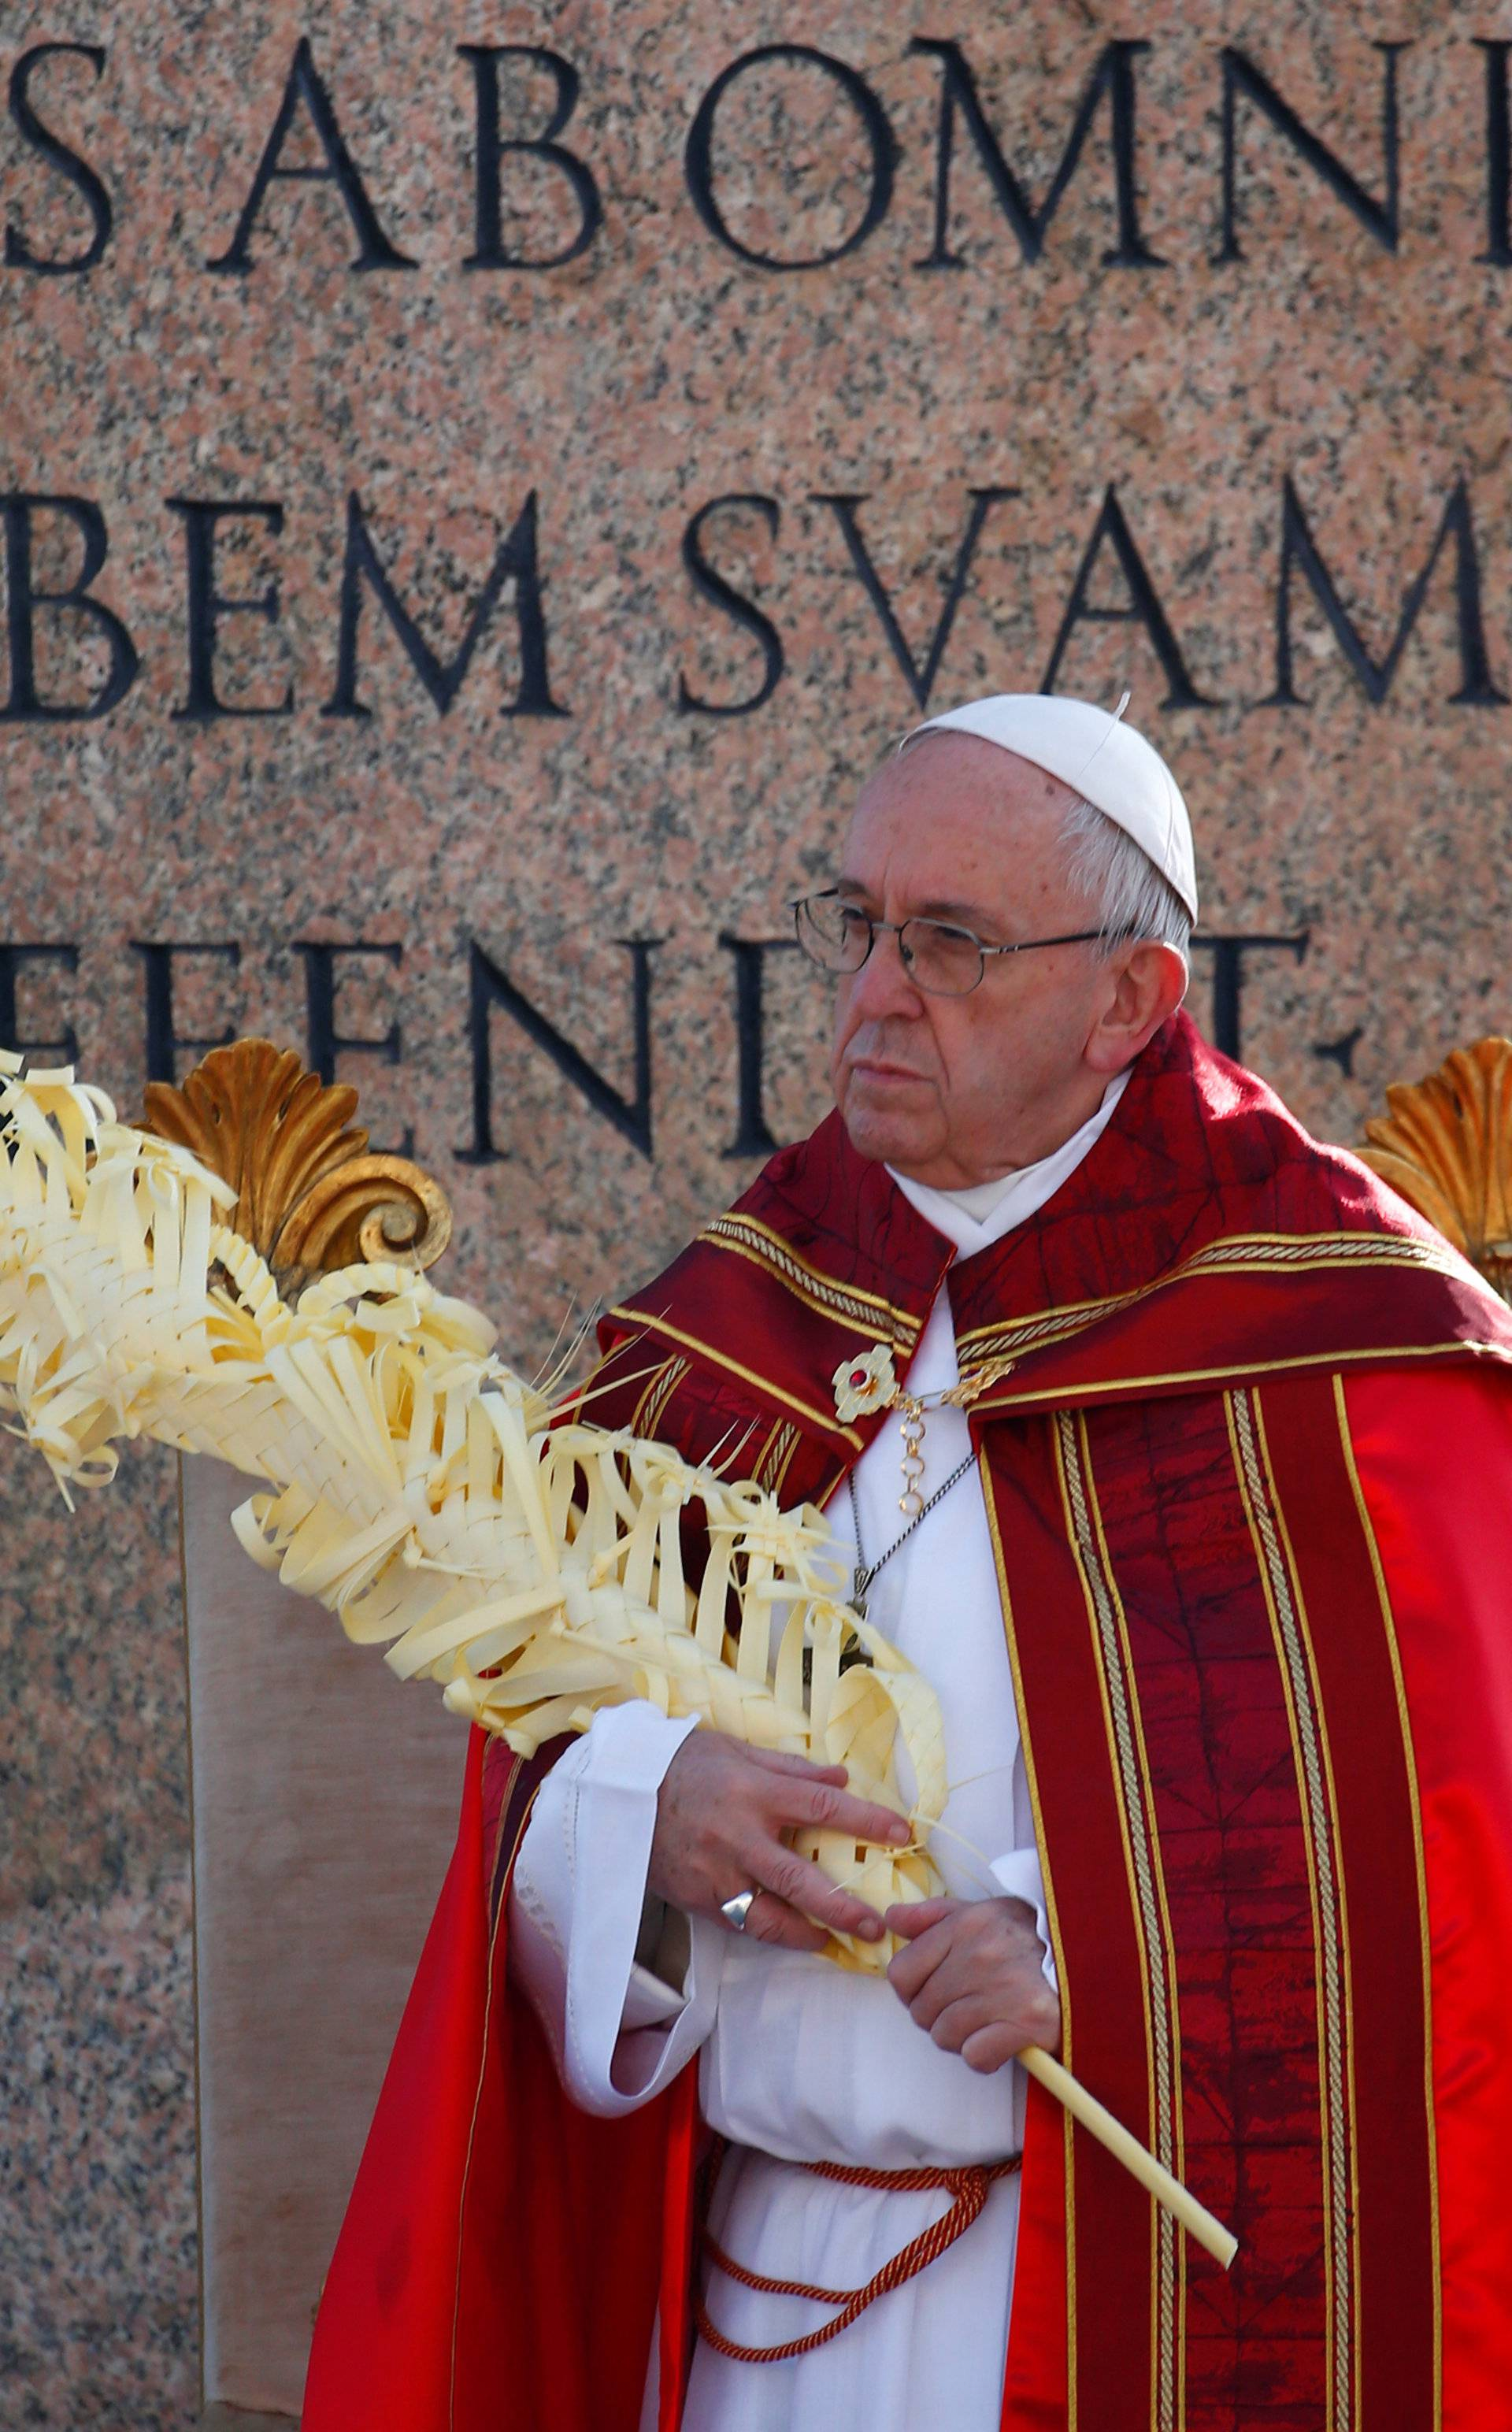 The Palm Sunday Mass in Saint Peter's Square at the Vatican